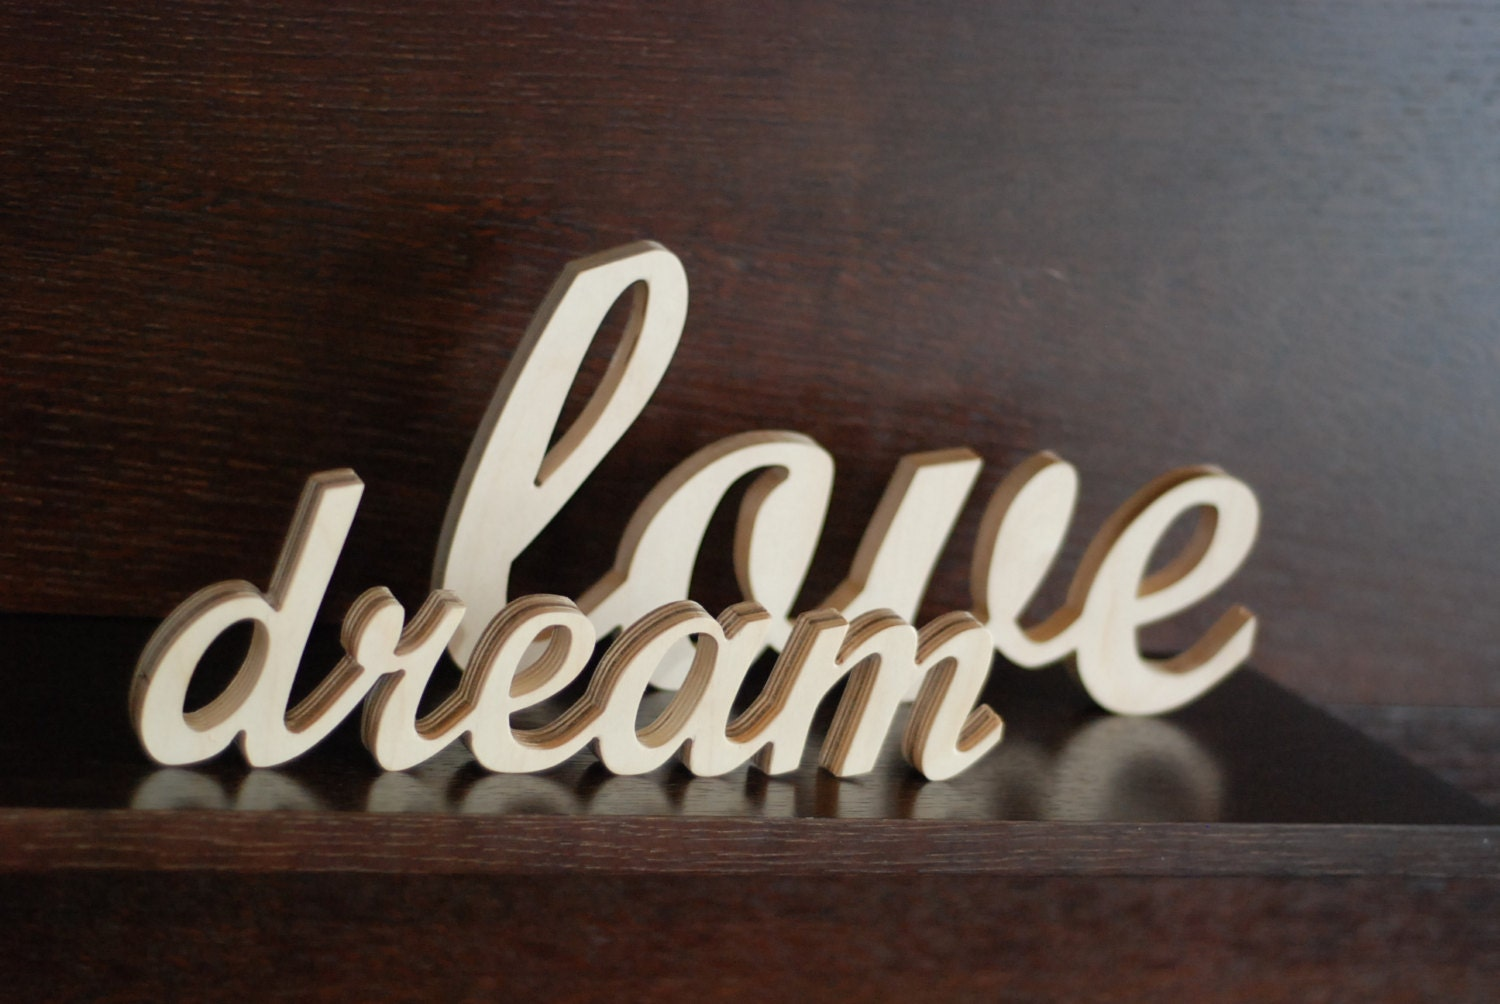 Wooden Words Wall Art : Wooden word decorations for walls interior design ideas